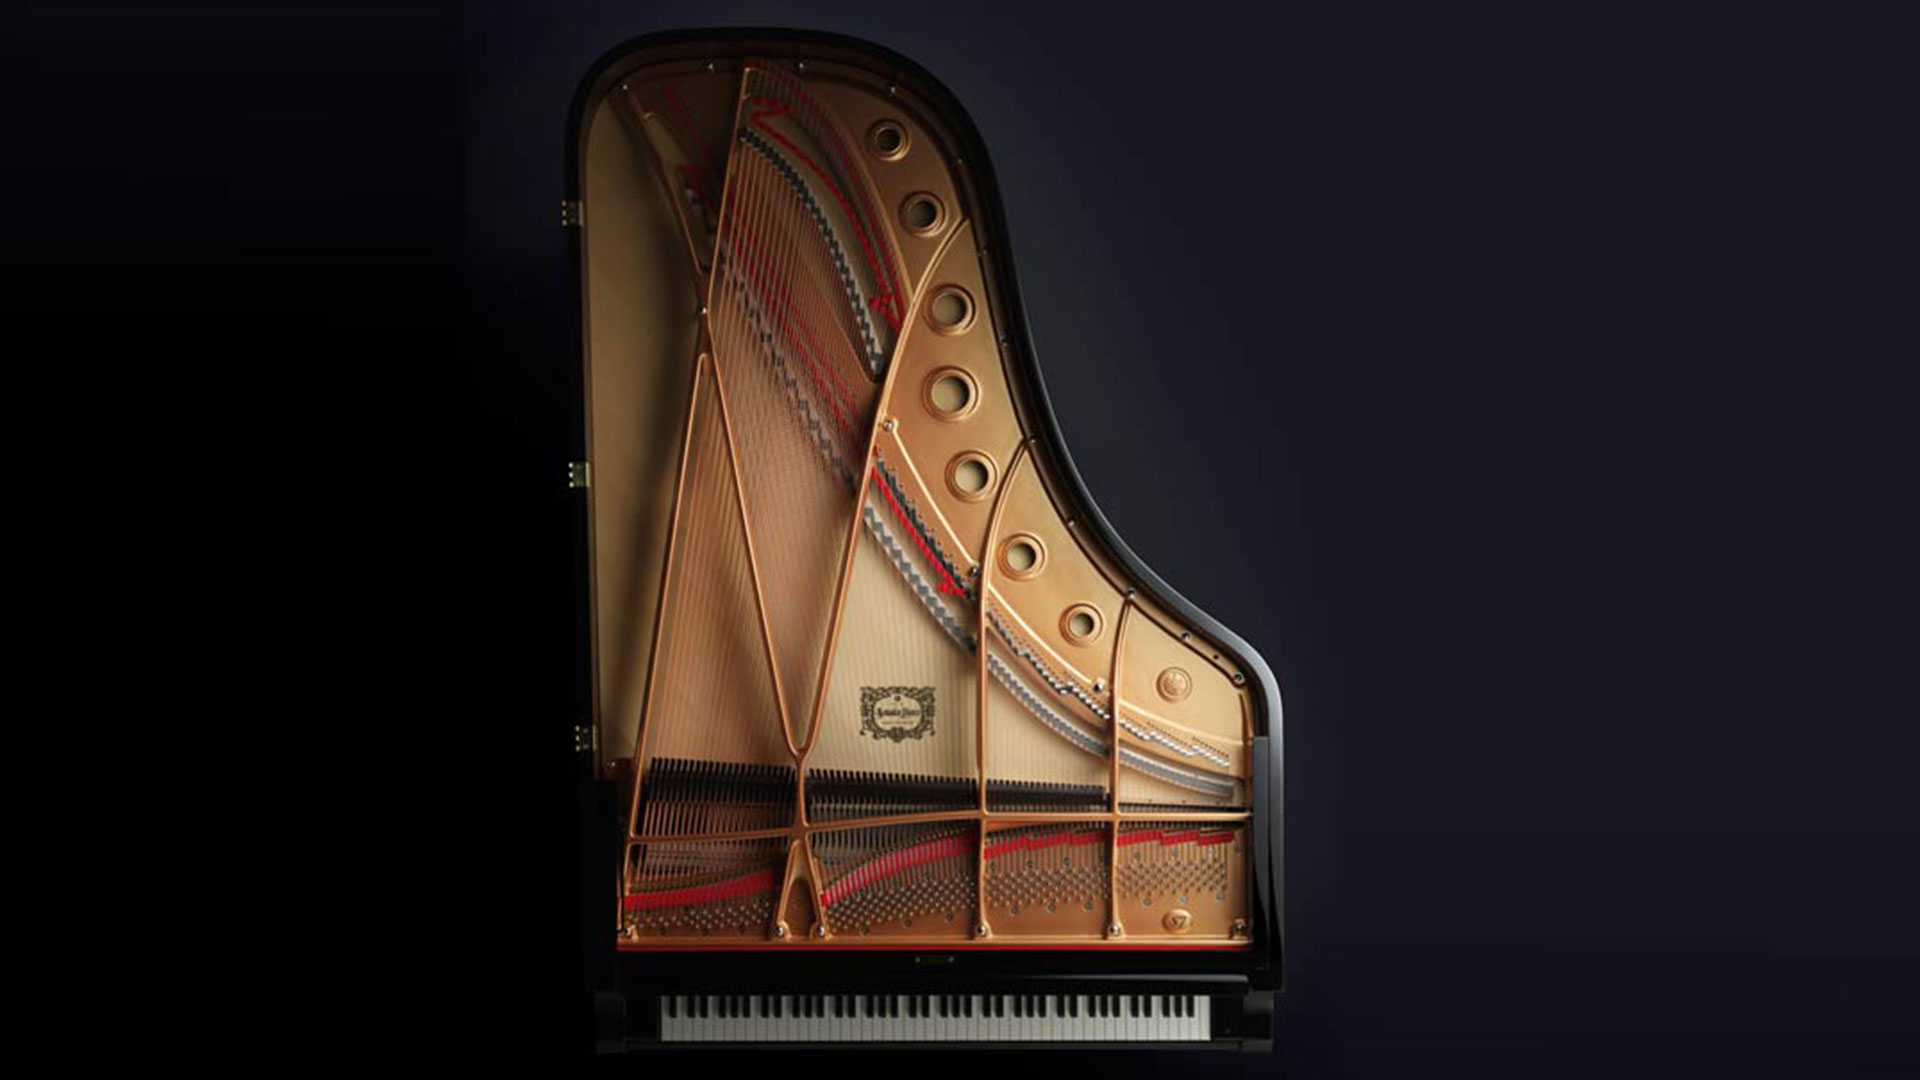 S3X Yamaha Premium Grand Piano